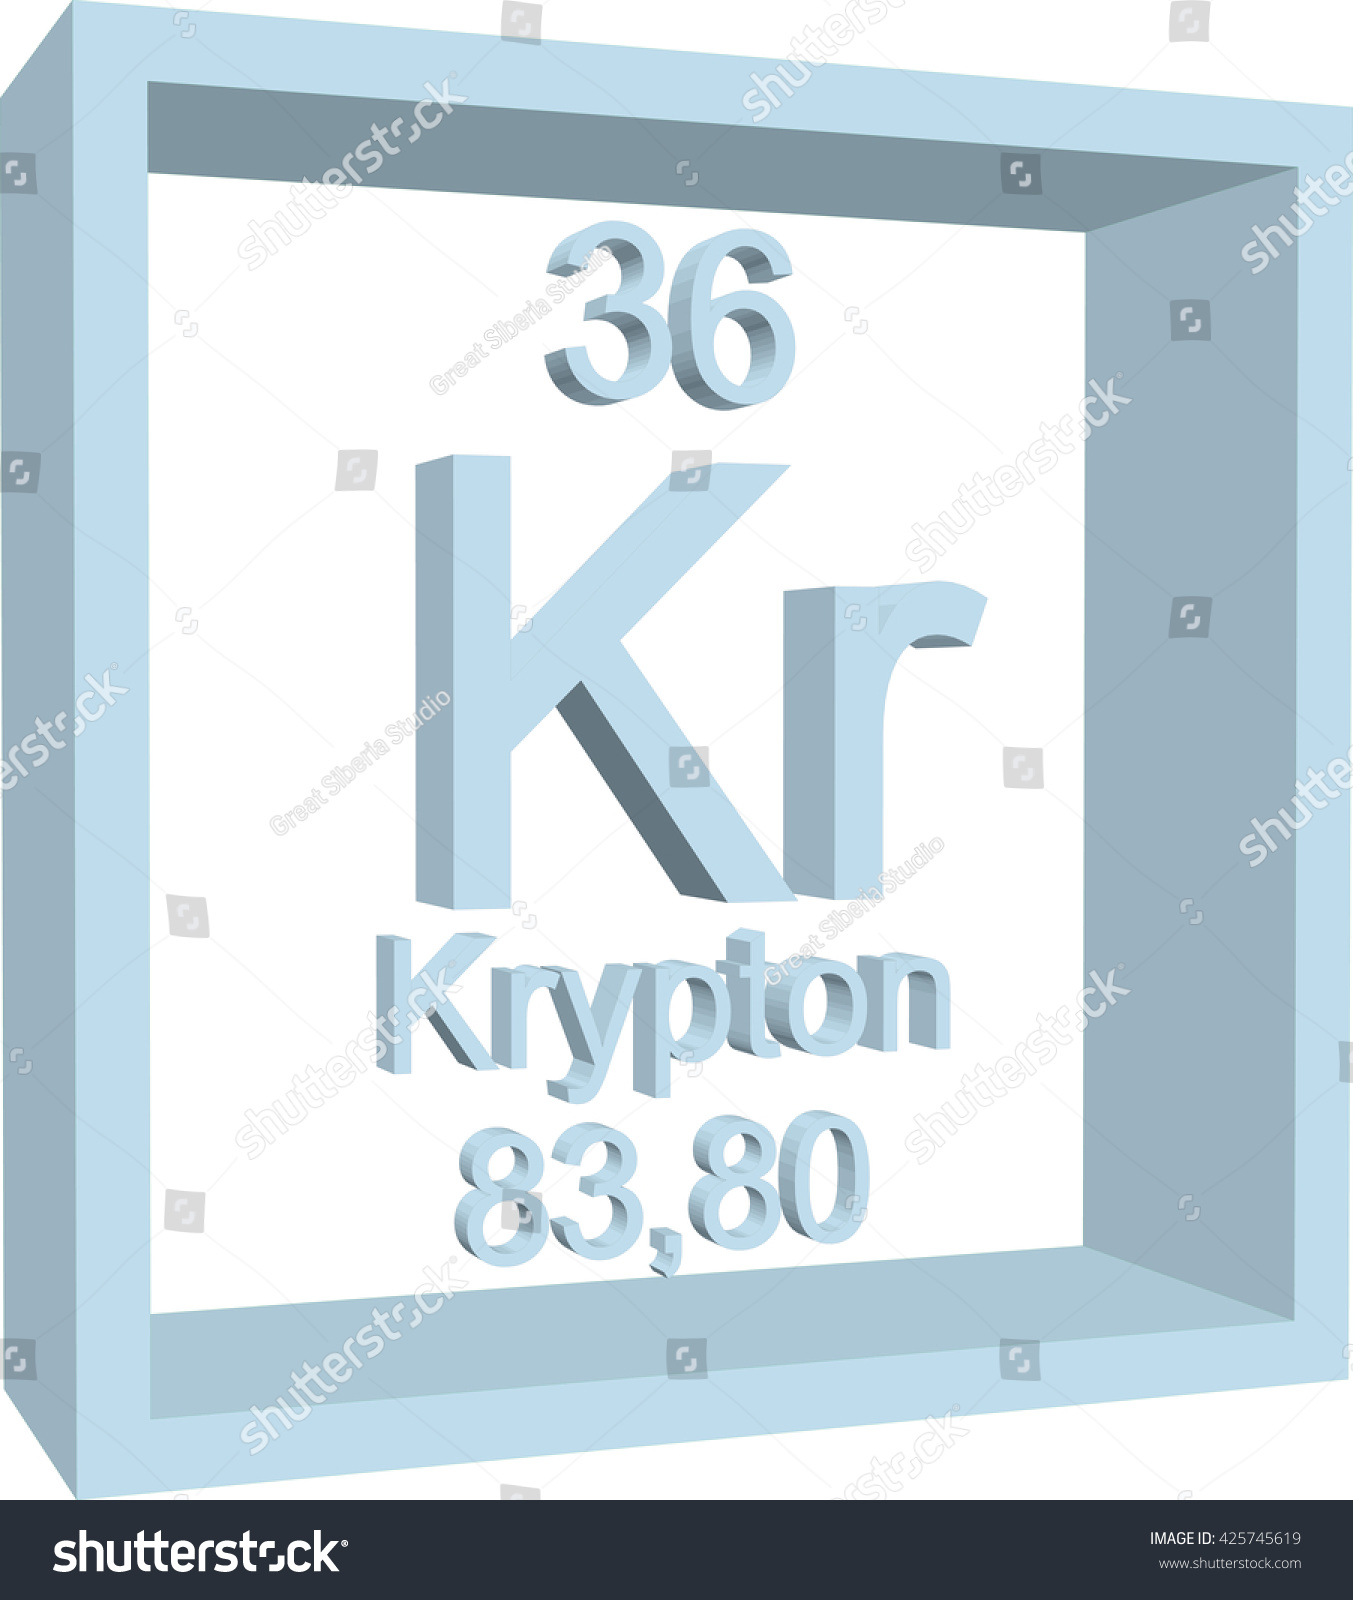 Periodic table elements krypton stock vector 425745619 shutterstock urtaz